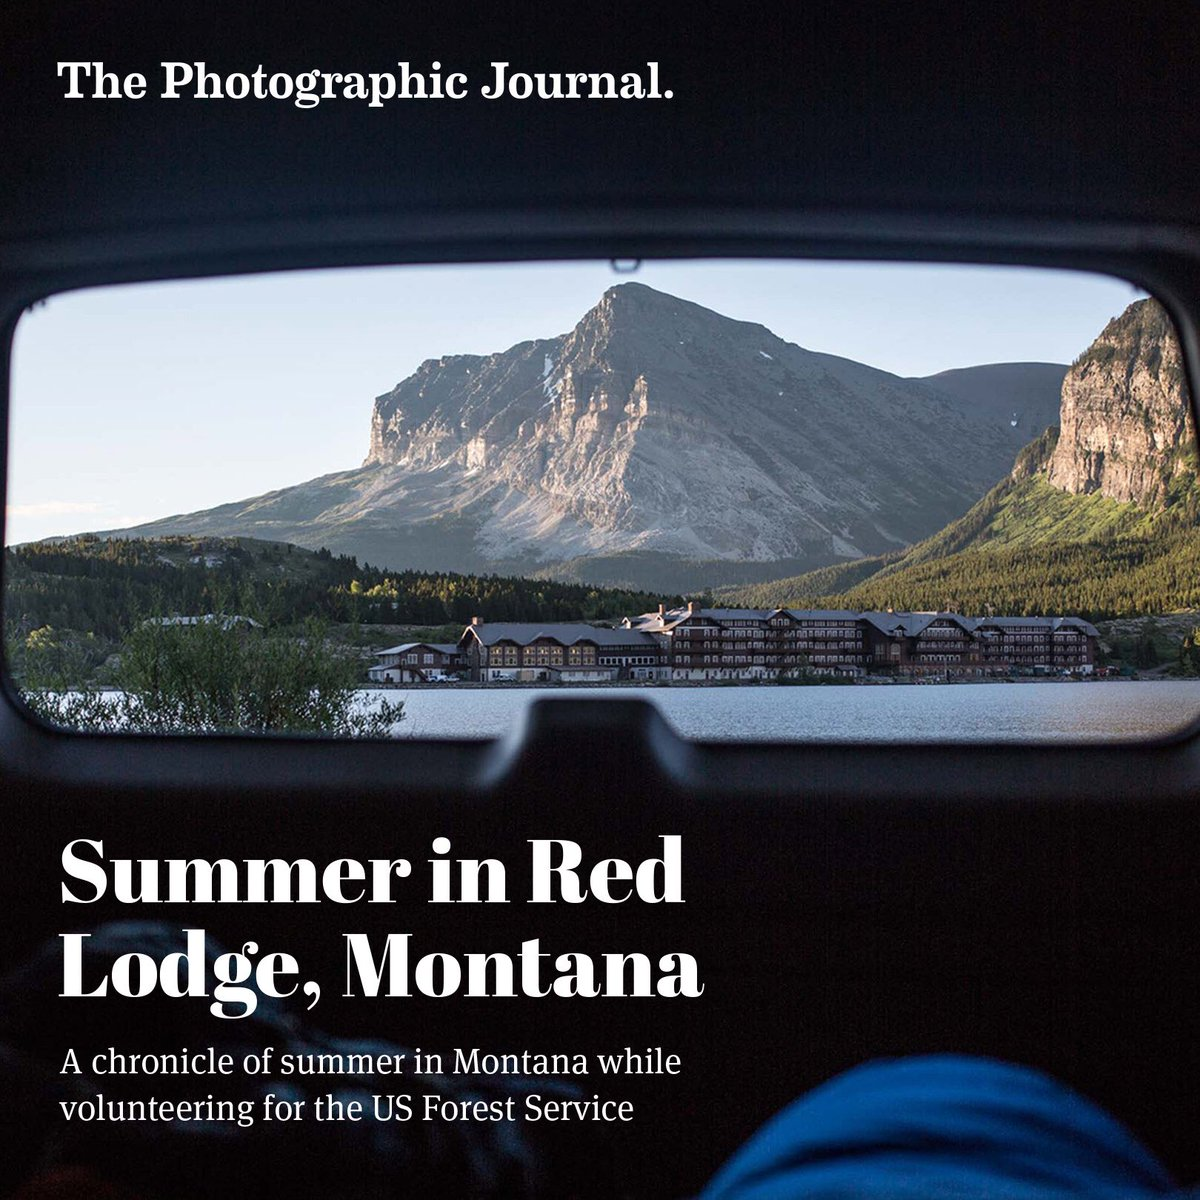 photographic journal tpj twitter escape to montana our new essay from ethan fichtner on the site now thephotographicjournal com essays summer in red lodge montana